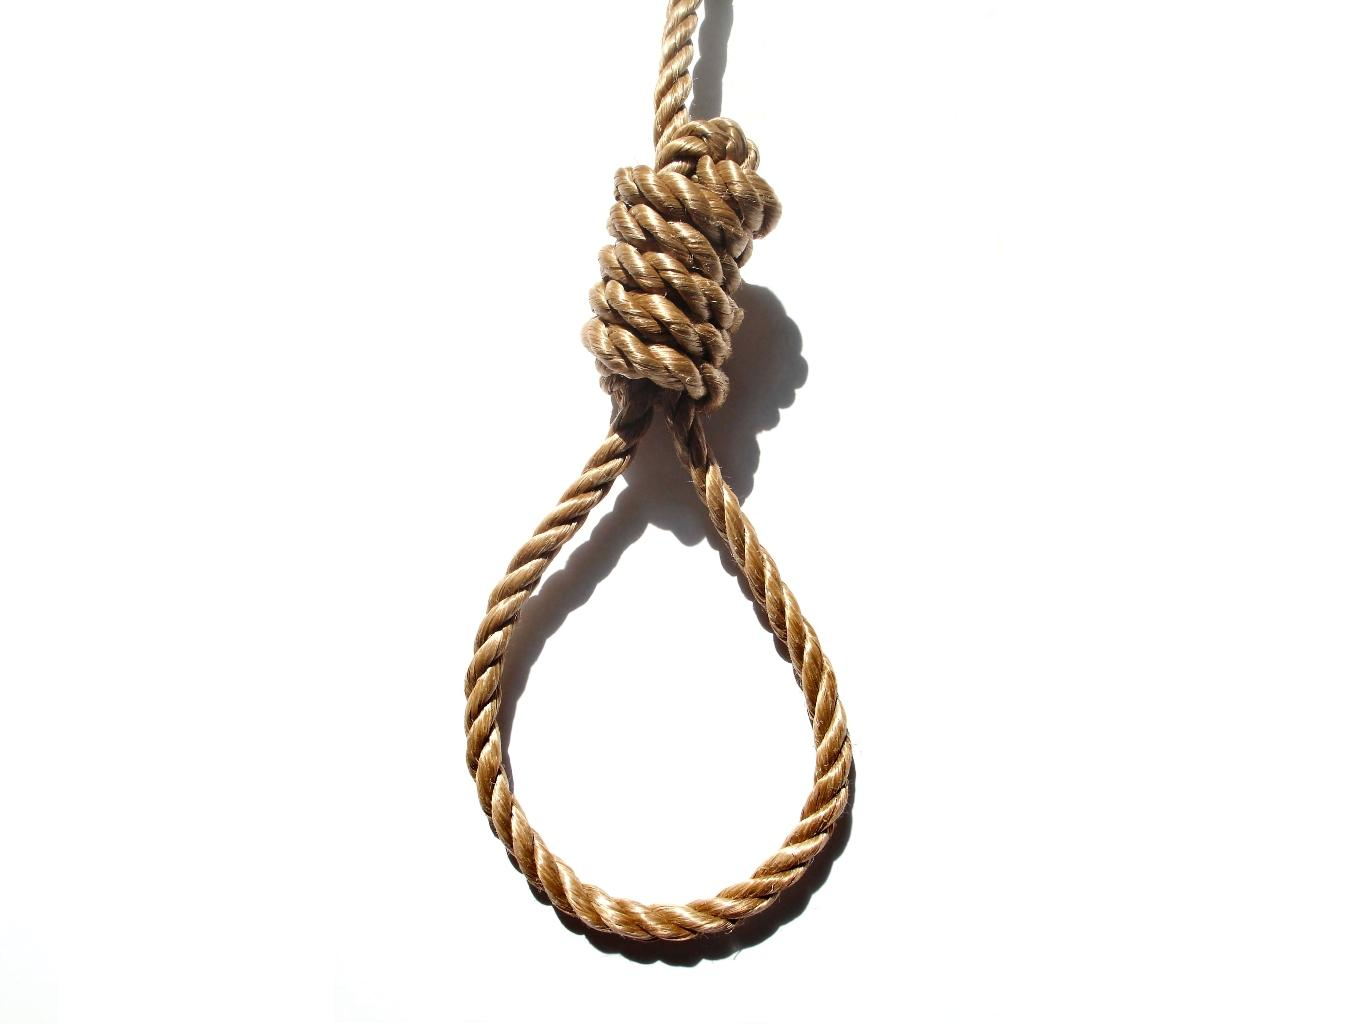 woman dies by suicide